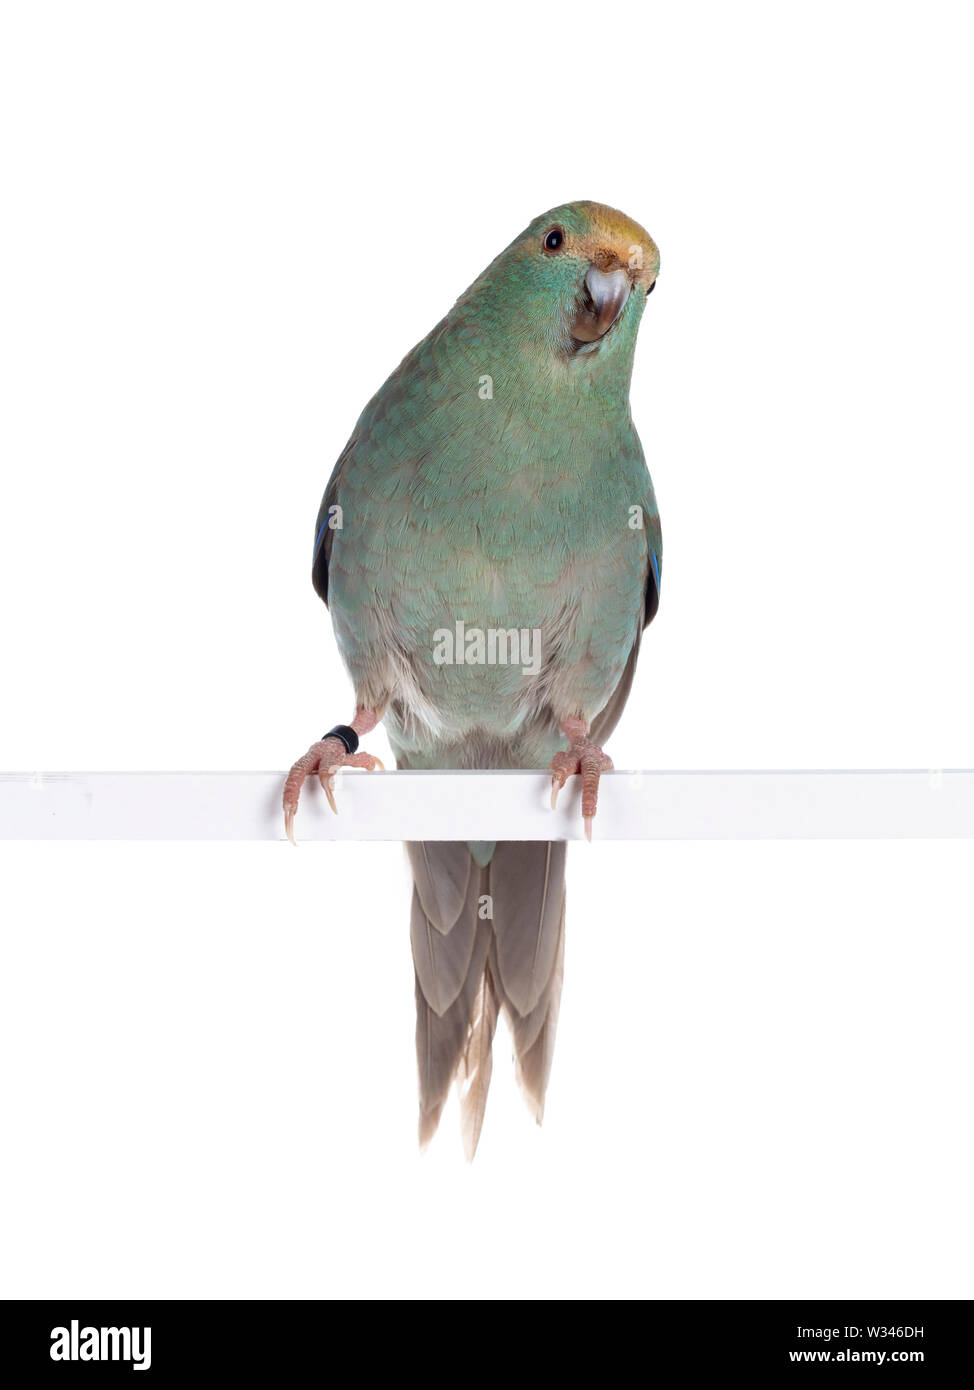 Curious turquoise Kakariki bird sitting on white rod, looking at camera with cute head tilt. Isolated on white background. - Stock Image